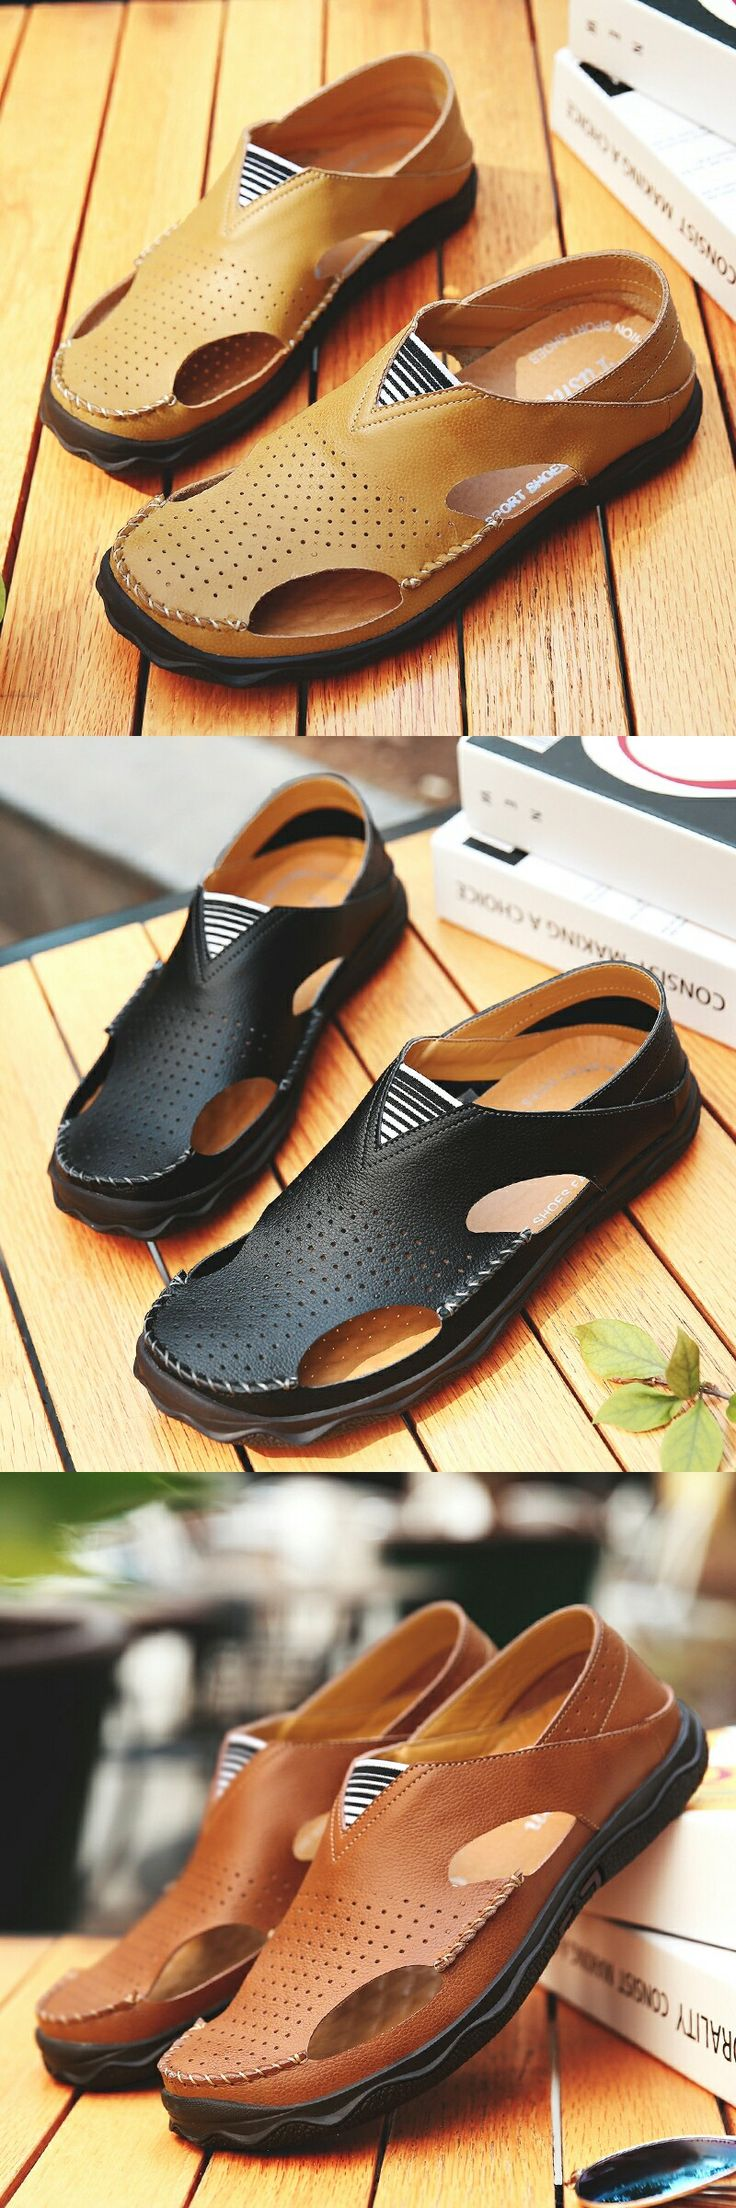 US $27.52  <Click to buy> Prelesty 2018 Summer Genuine Leather Casual Shoes Slippers New Men Sandals Breathable Outdoor Beach Sandals Hollow Holes